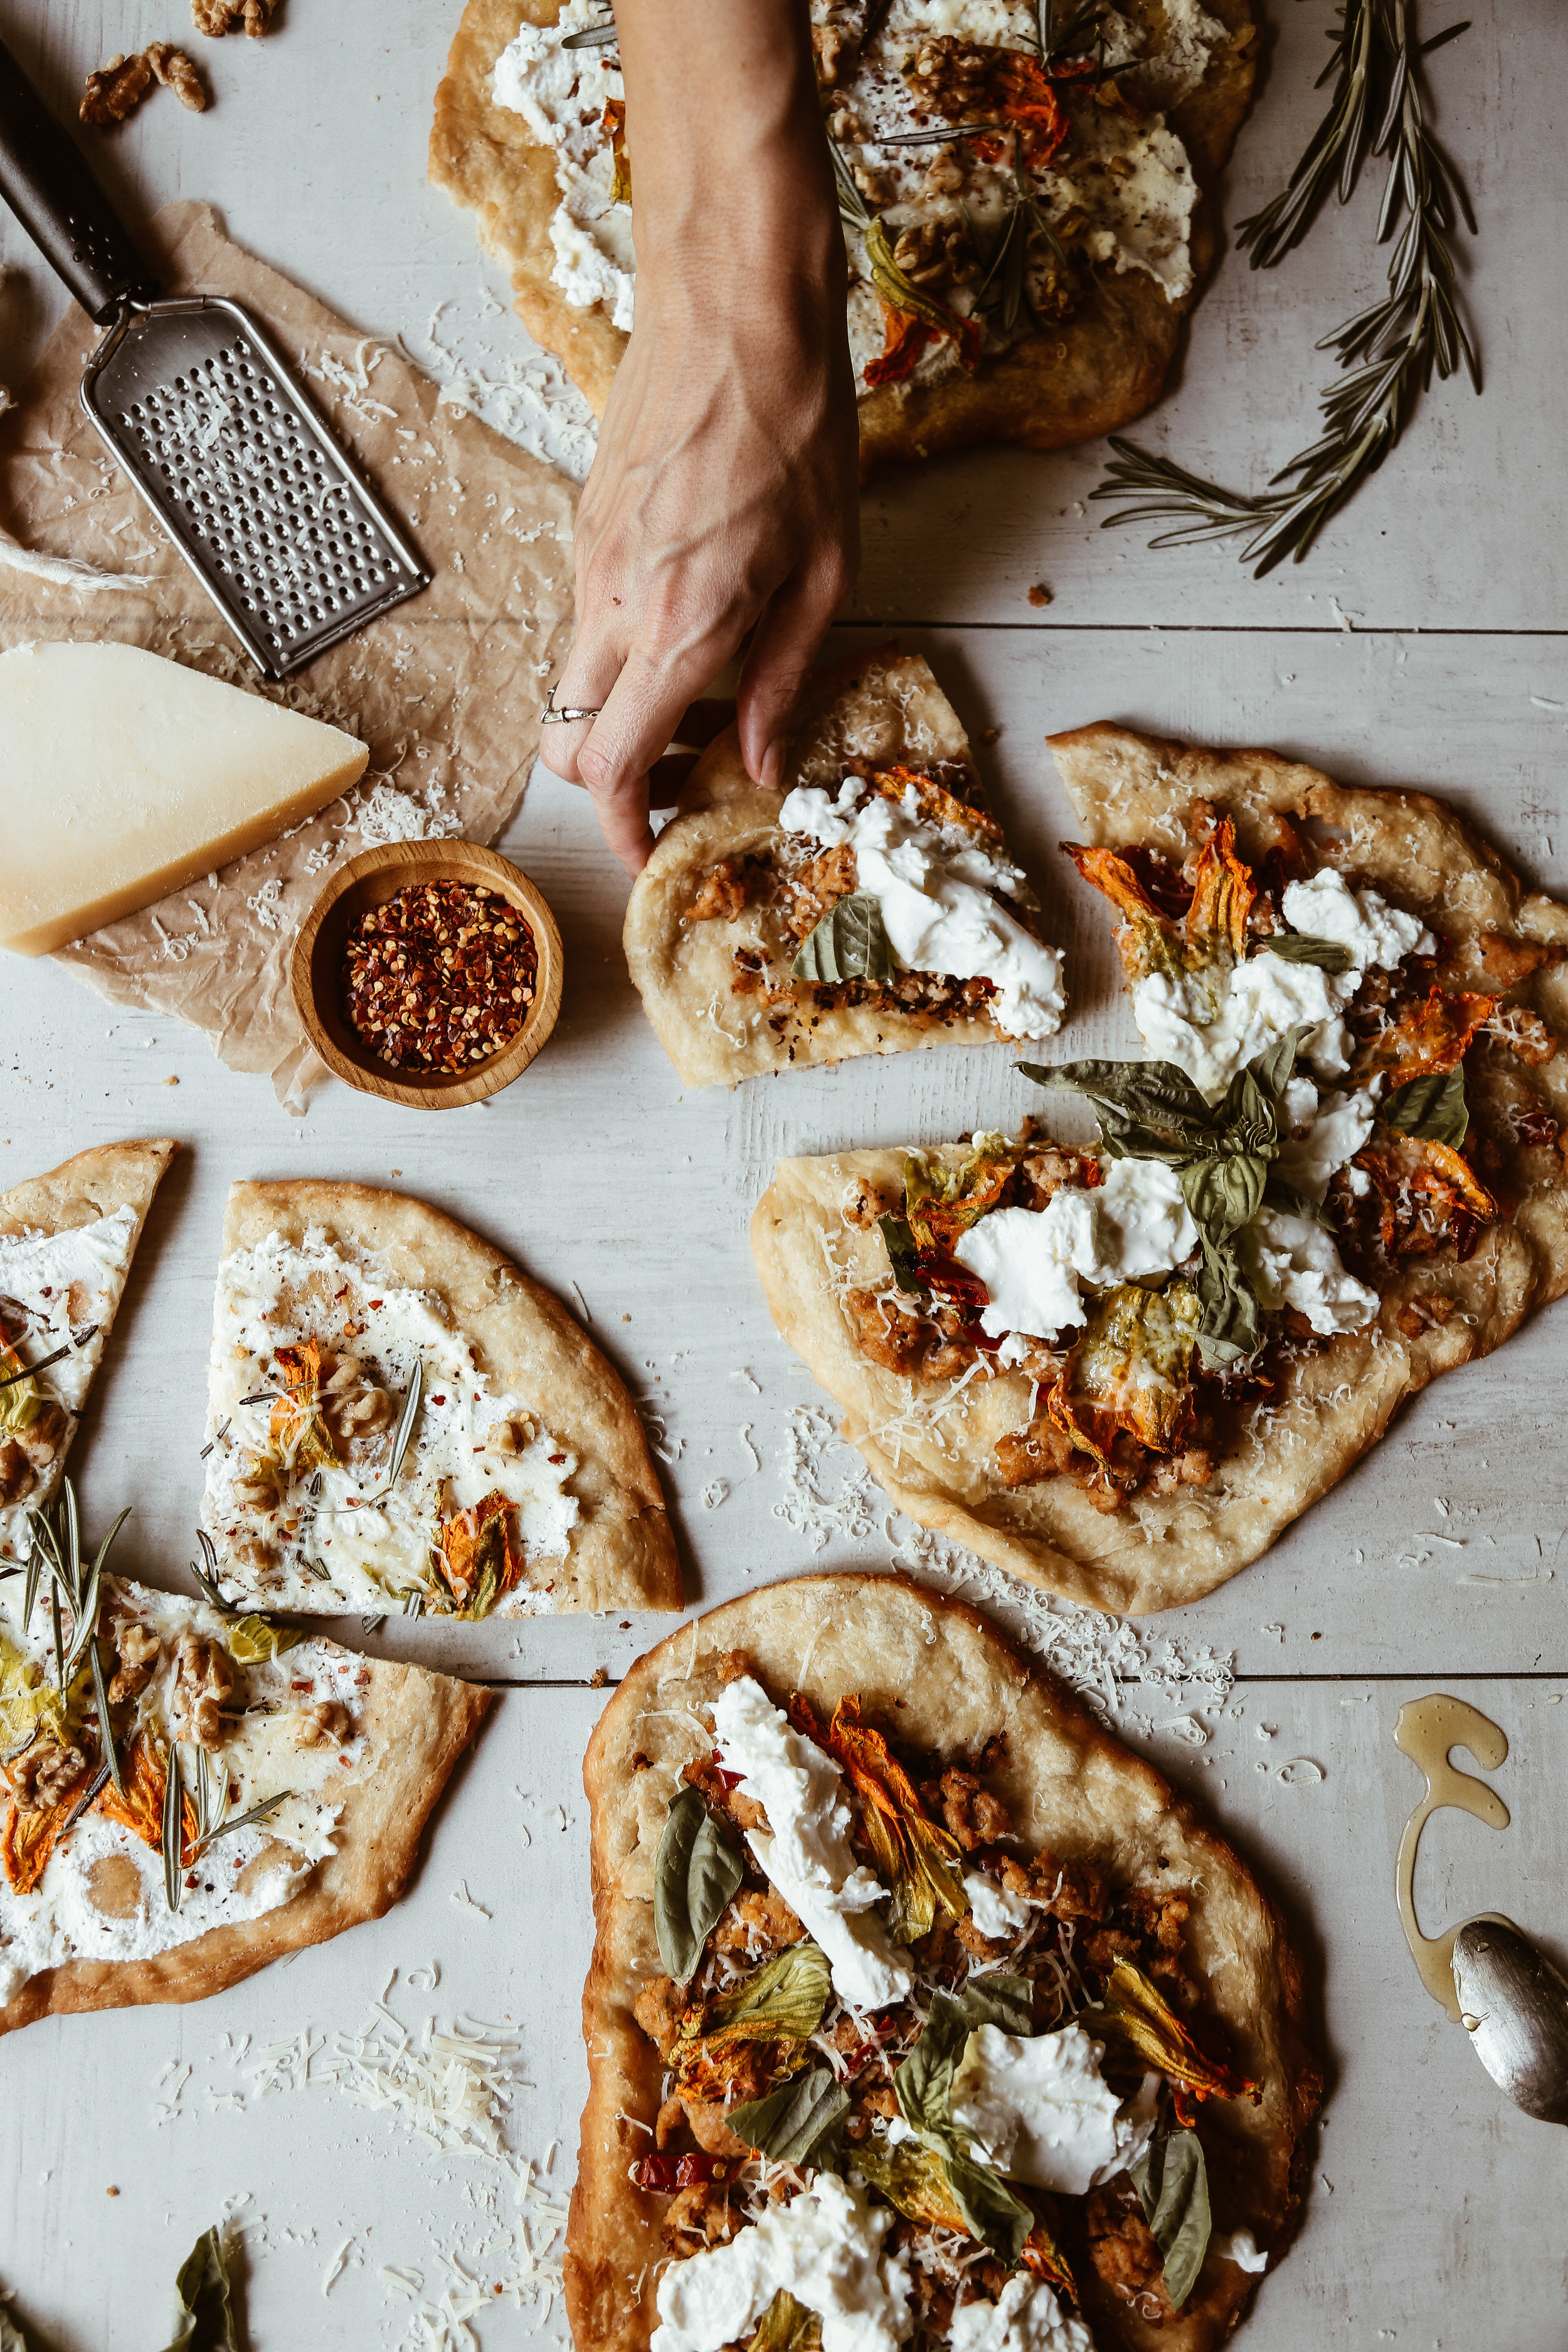 fried pizza with squash blossoms-14.jpg